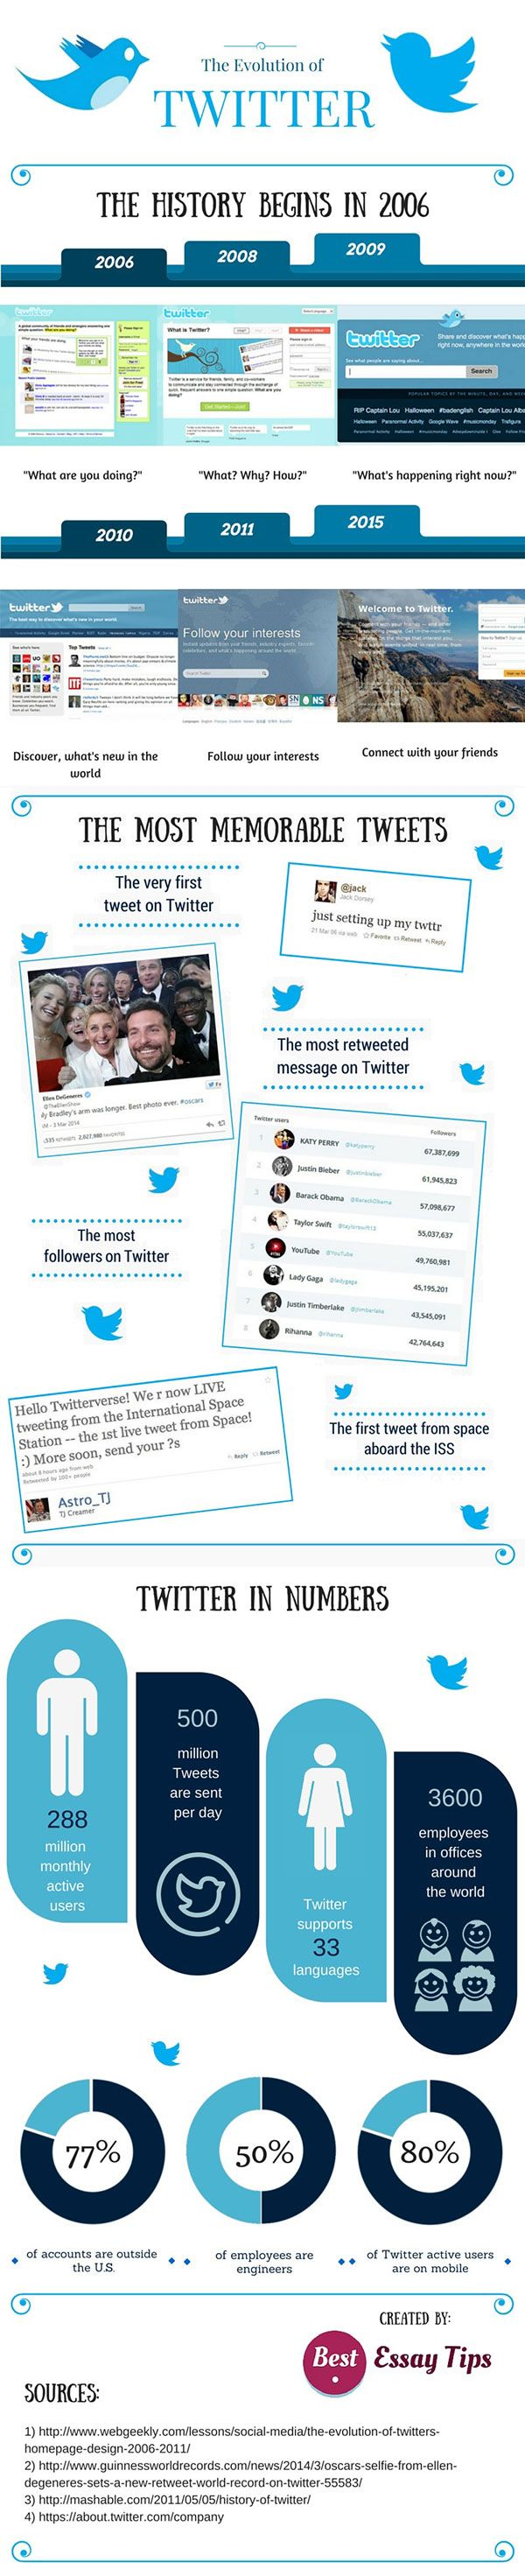 Twitter which was launched way back in 2006 has definitely gone a long way eversince it was created. To date, there are more than 288 million users.